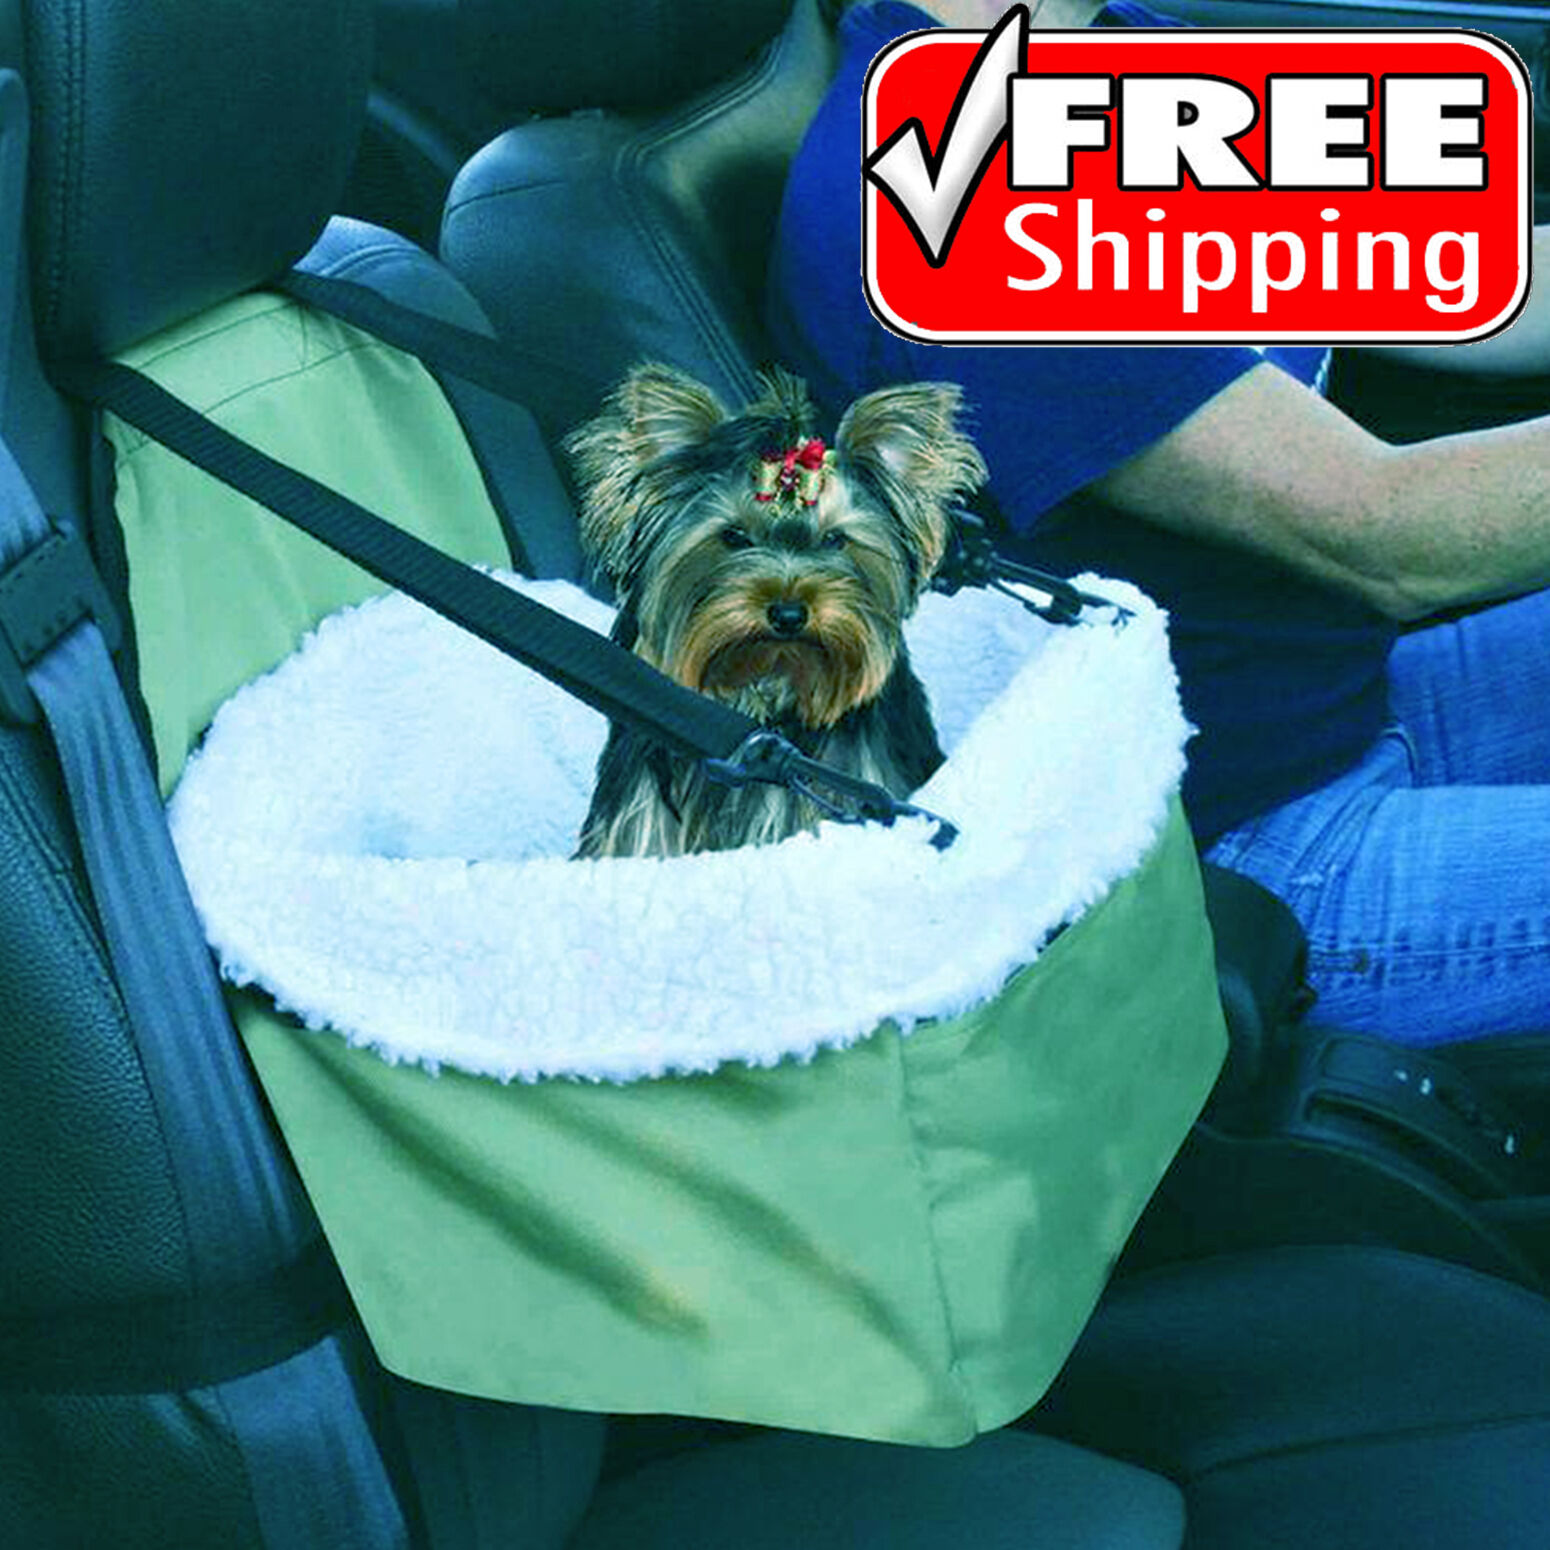 Car Seat For Dog Pet Cat Booster Blanket Chair Zippered Puppy Carrier Soft Kitty